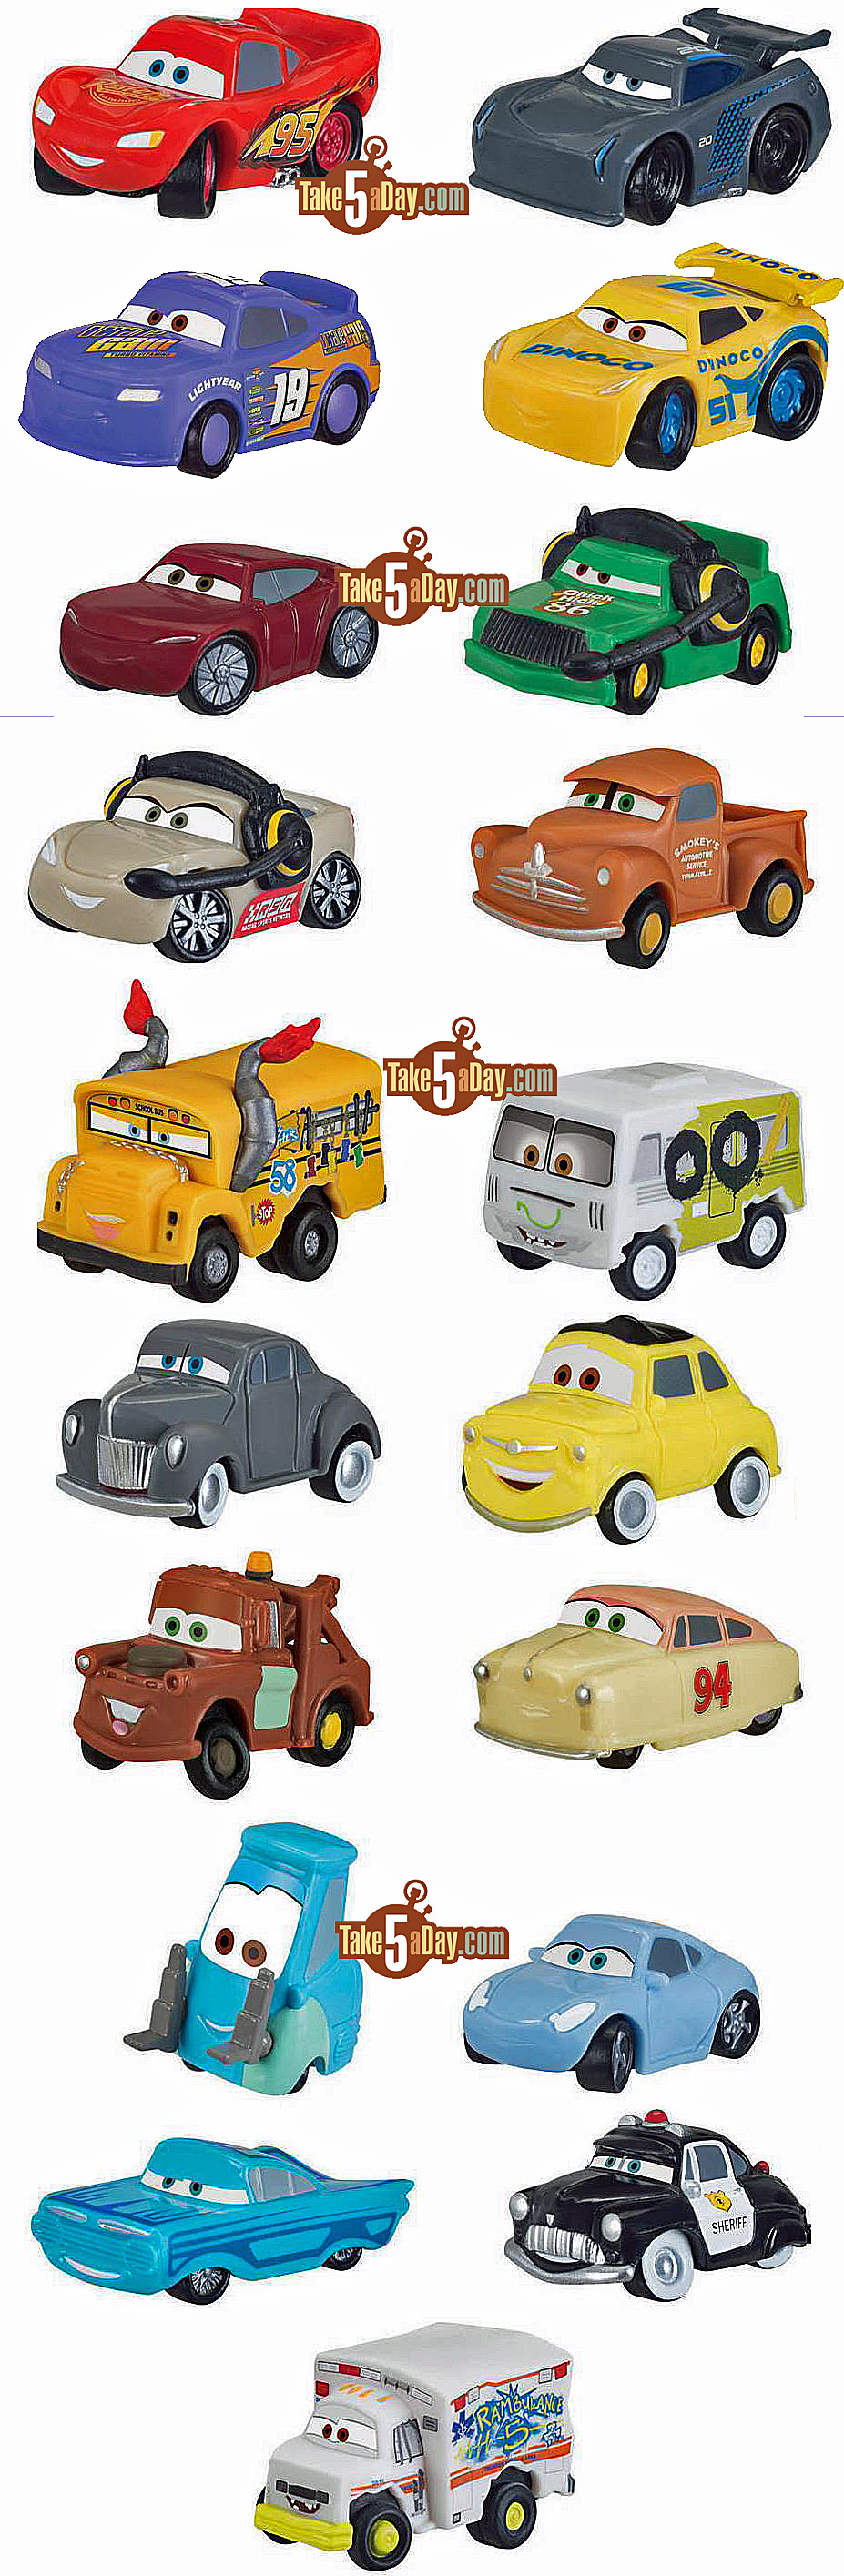 Disney Pixar Cars 3 The New Mini S Amp Mini S Blind Bag